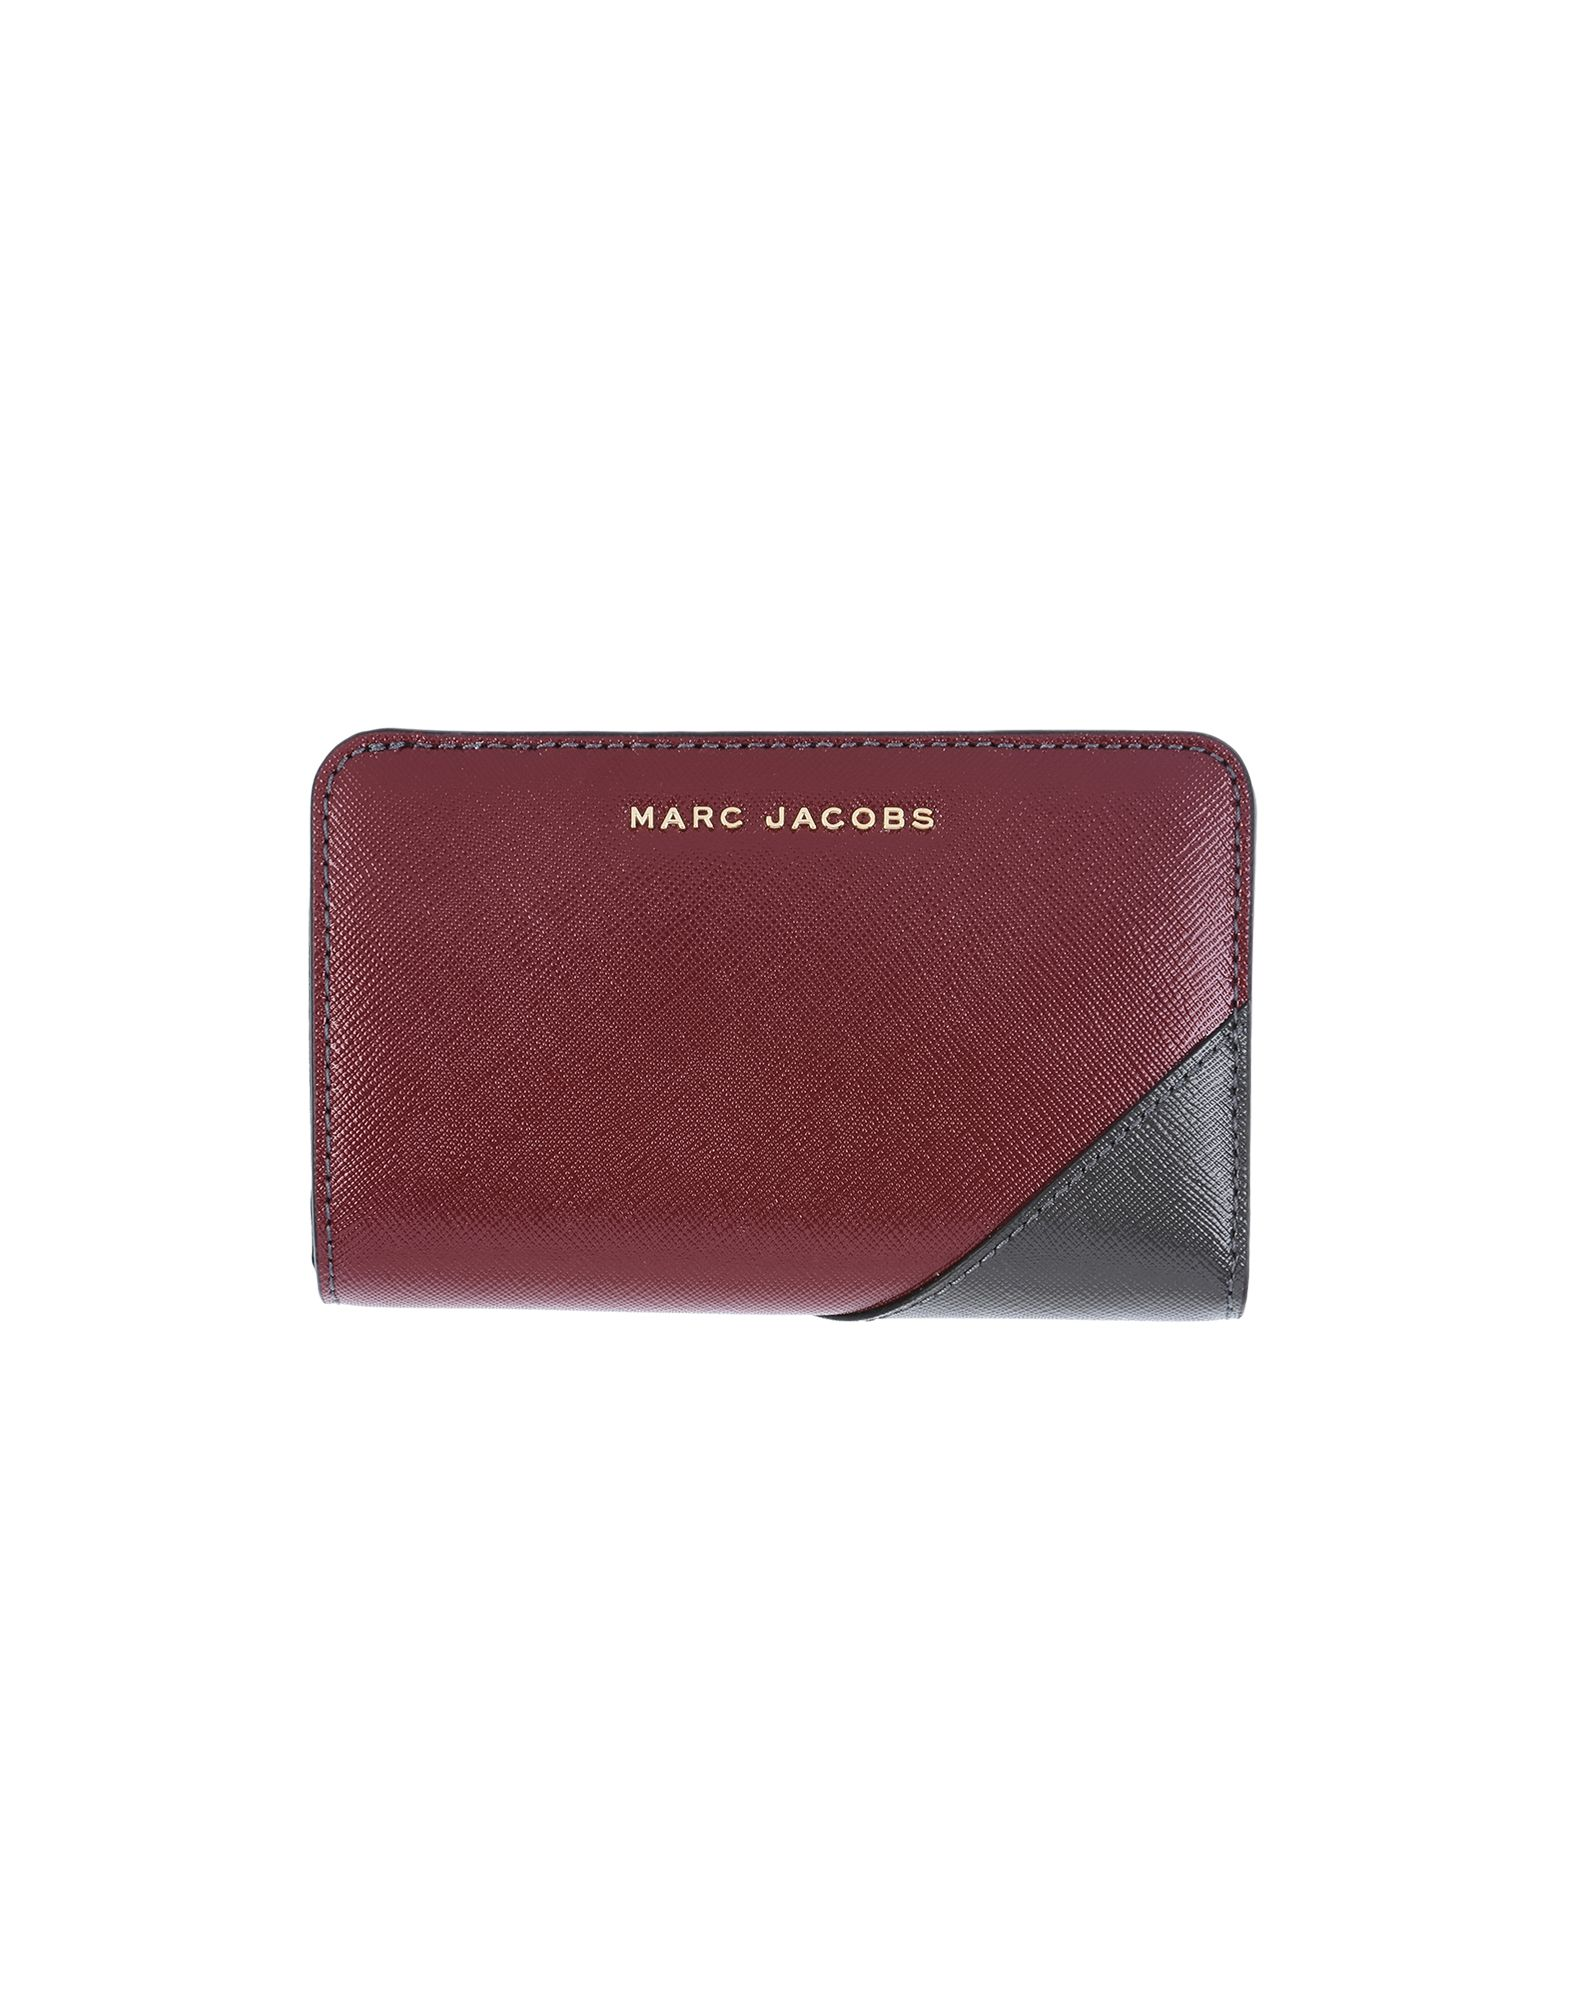 huge selection of 603a9 38328 マーク・ジェイコブス(MARC JACOBS) レディース長財布 | 通販 ...